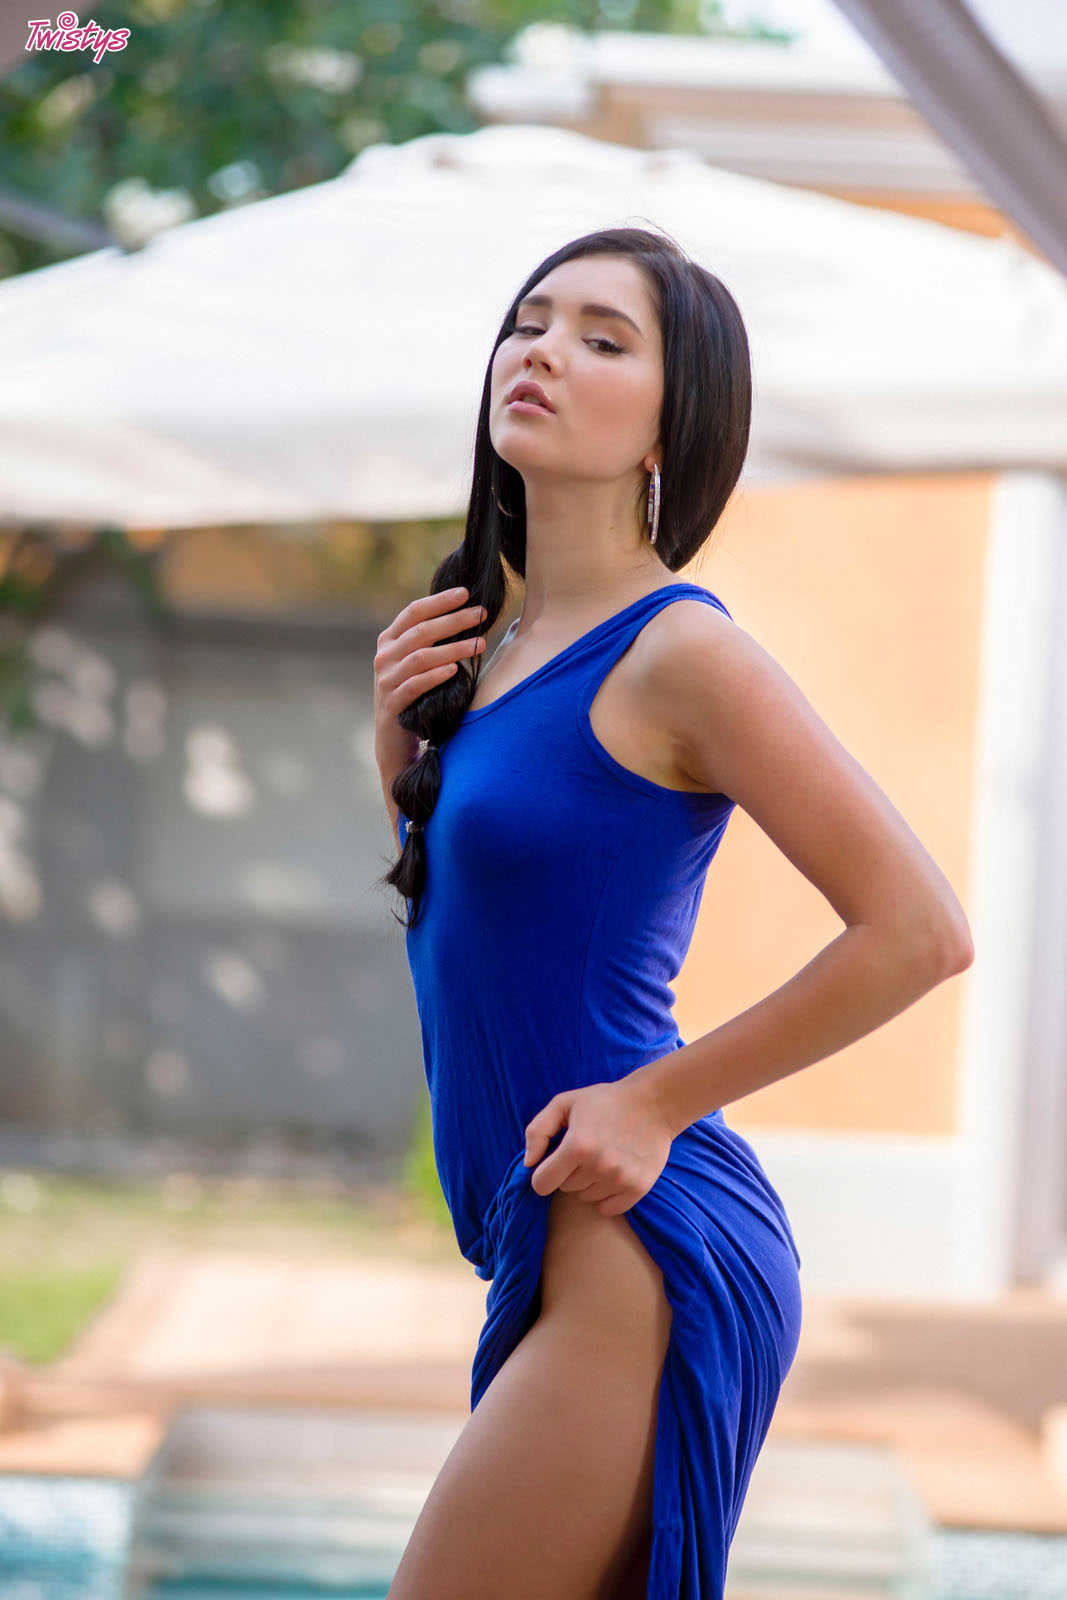 Erotic Model Long Dress 5